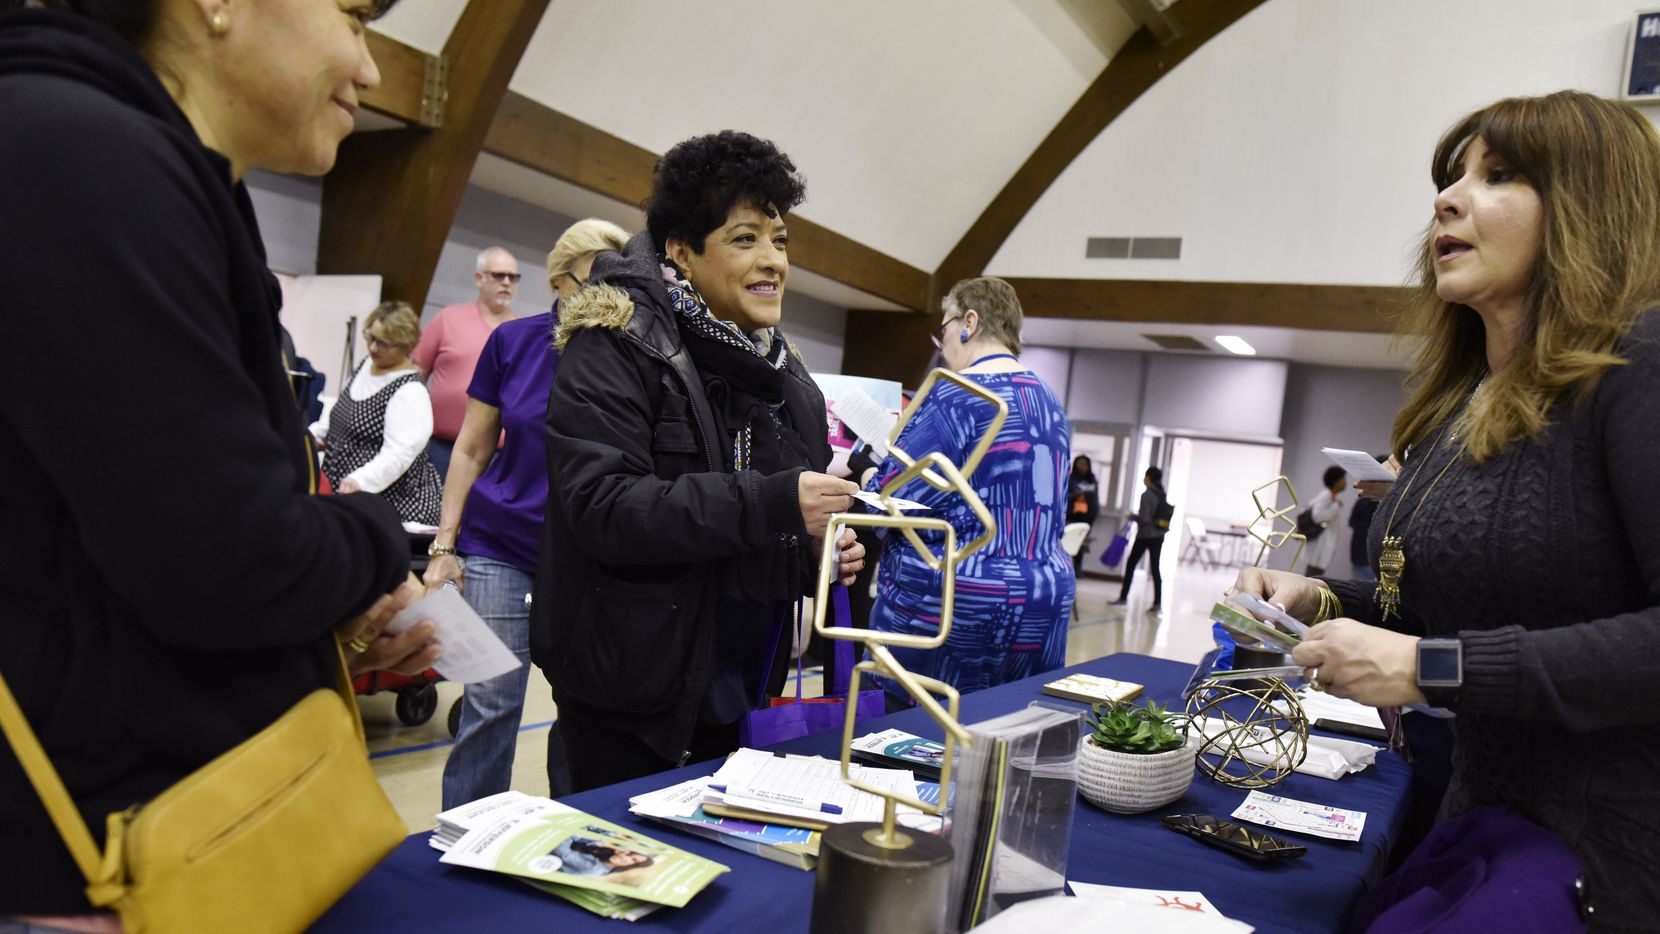 Laura Montoya, left, and Veronica Ocana, center, receive dental information from Jefferson Dental community manager Dely Acosta, right, during a health and safety fair at Pleasant Grove Christian Church in Dallas, Jan. 25, 2020. The fair hosted a variety of health and safety information, as well as free flu shots by the Dallas County Health Department, and free lab tests checking cholesterol, STDs, thyroid, diabetes and glucose levels. Ben Torres/Special Contributor